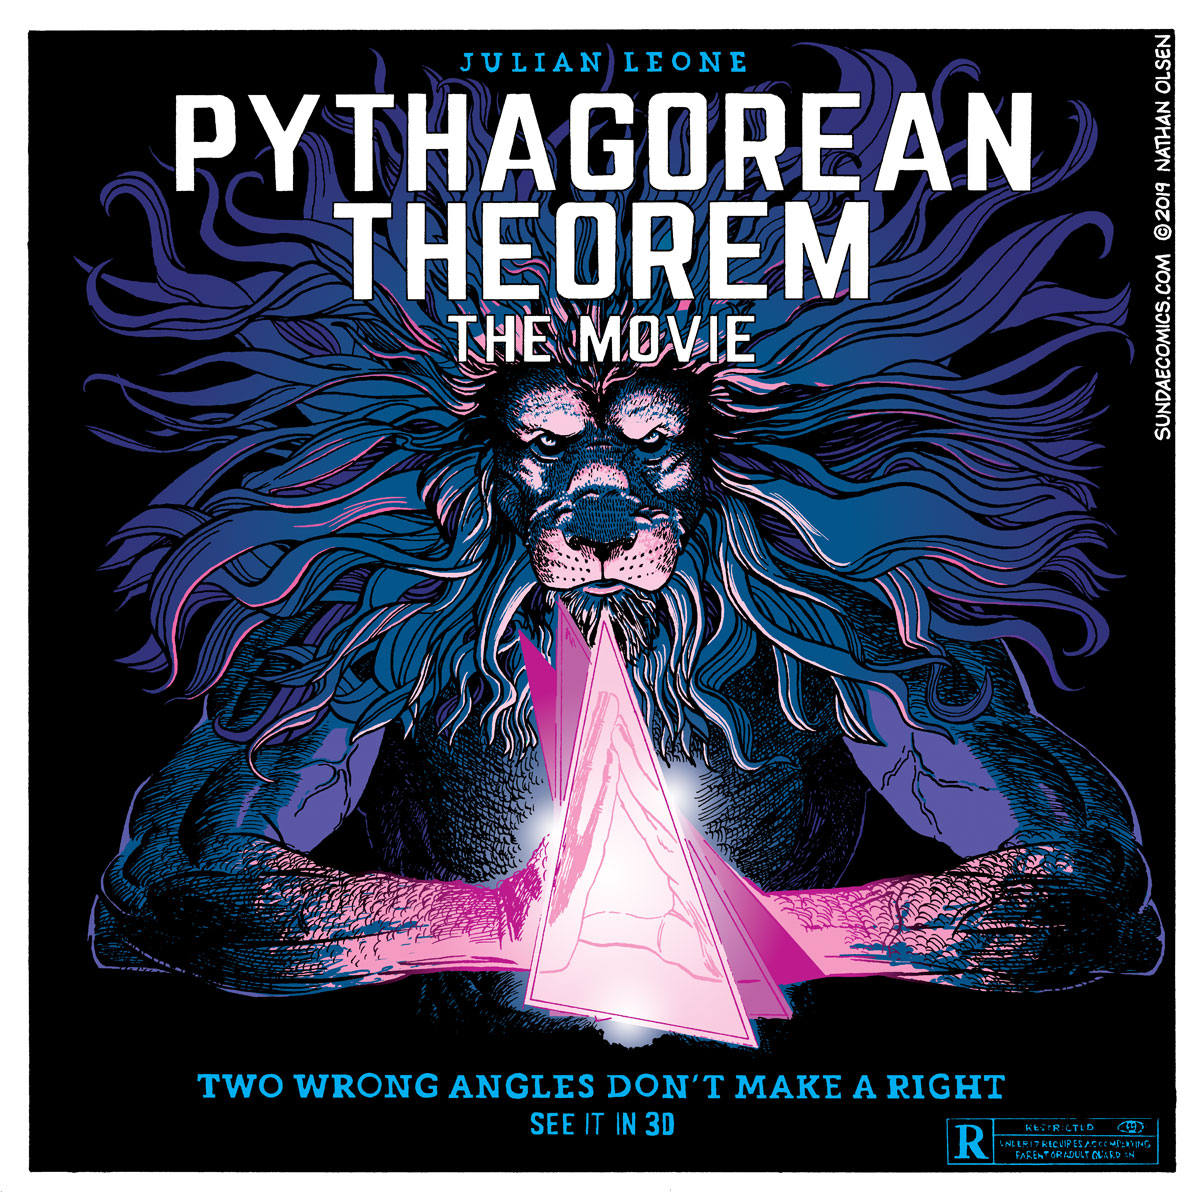 A webcomic of a movie poster for Julian Leone's latest feature film, Pythagorean Theorem: The Movie.